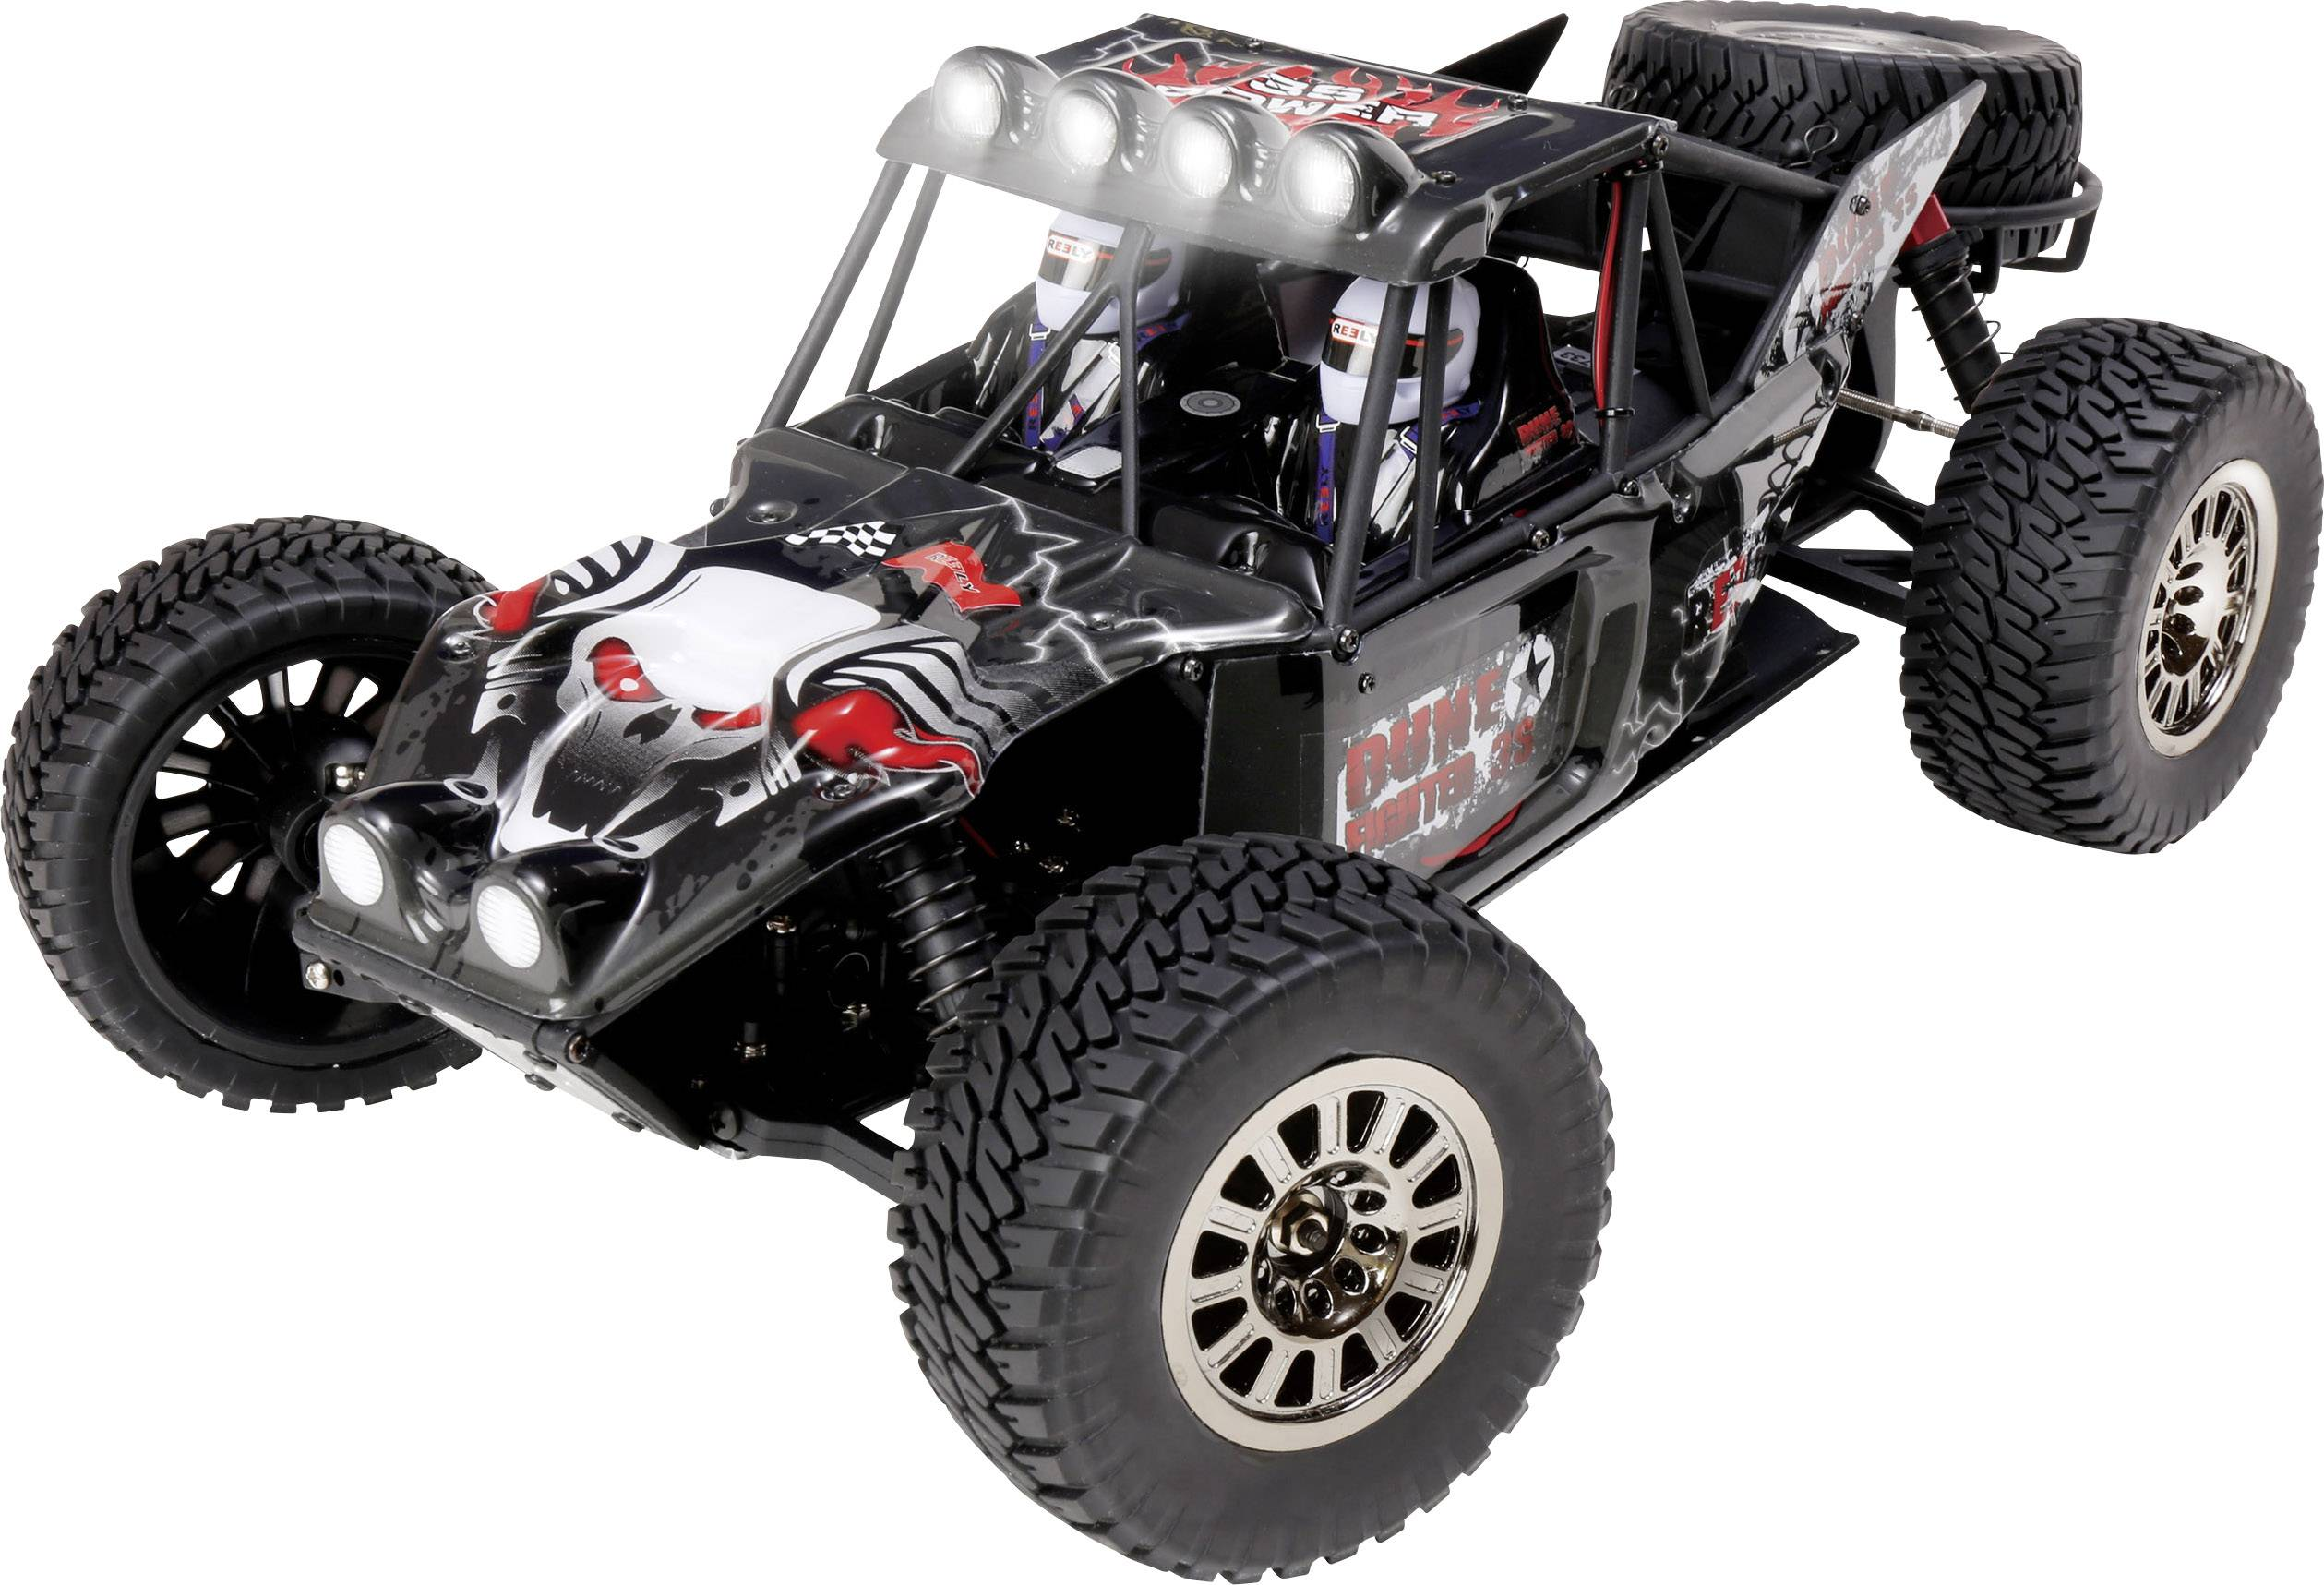 reely dune fighter 3s brushless 1 10 rc modellauto elektro. Black Bedroom Furniture Sets. Home Design Ideas